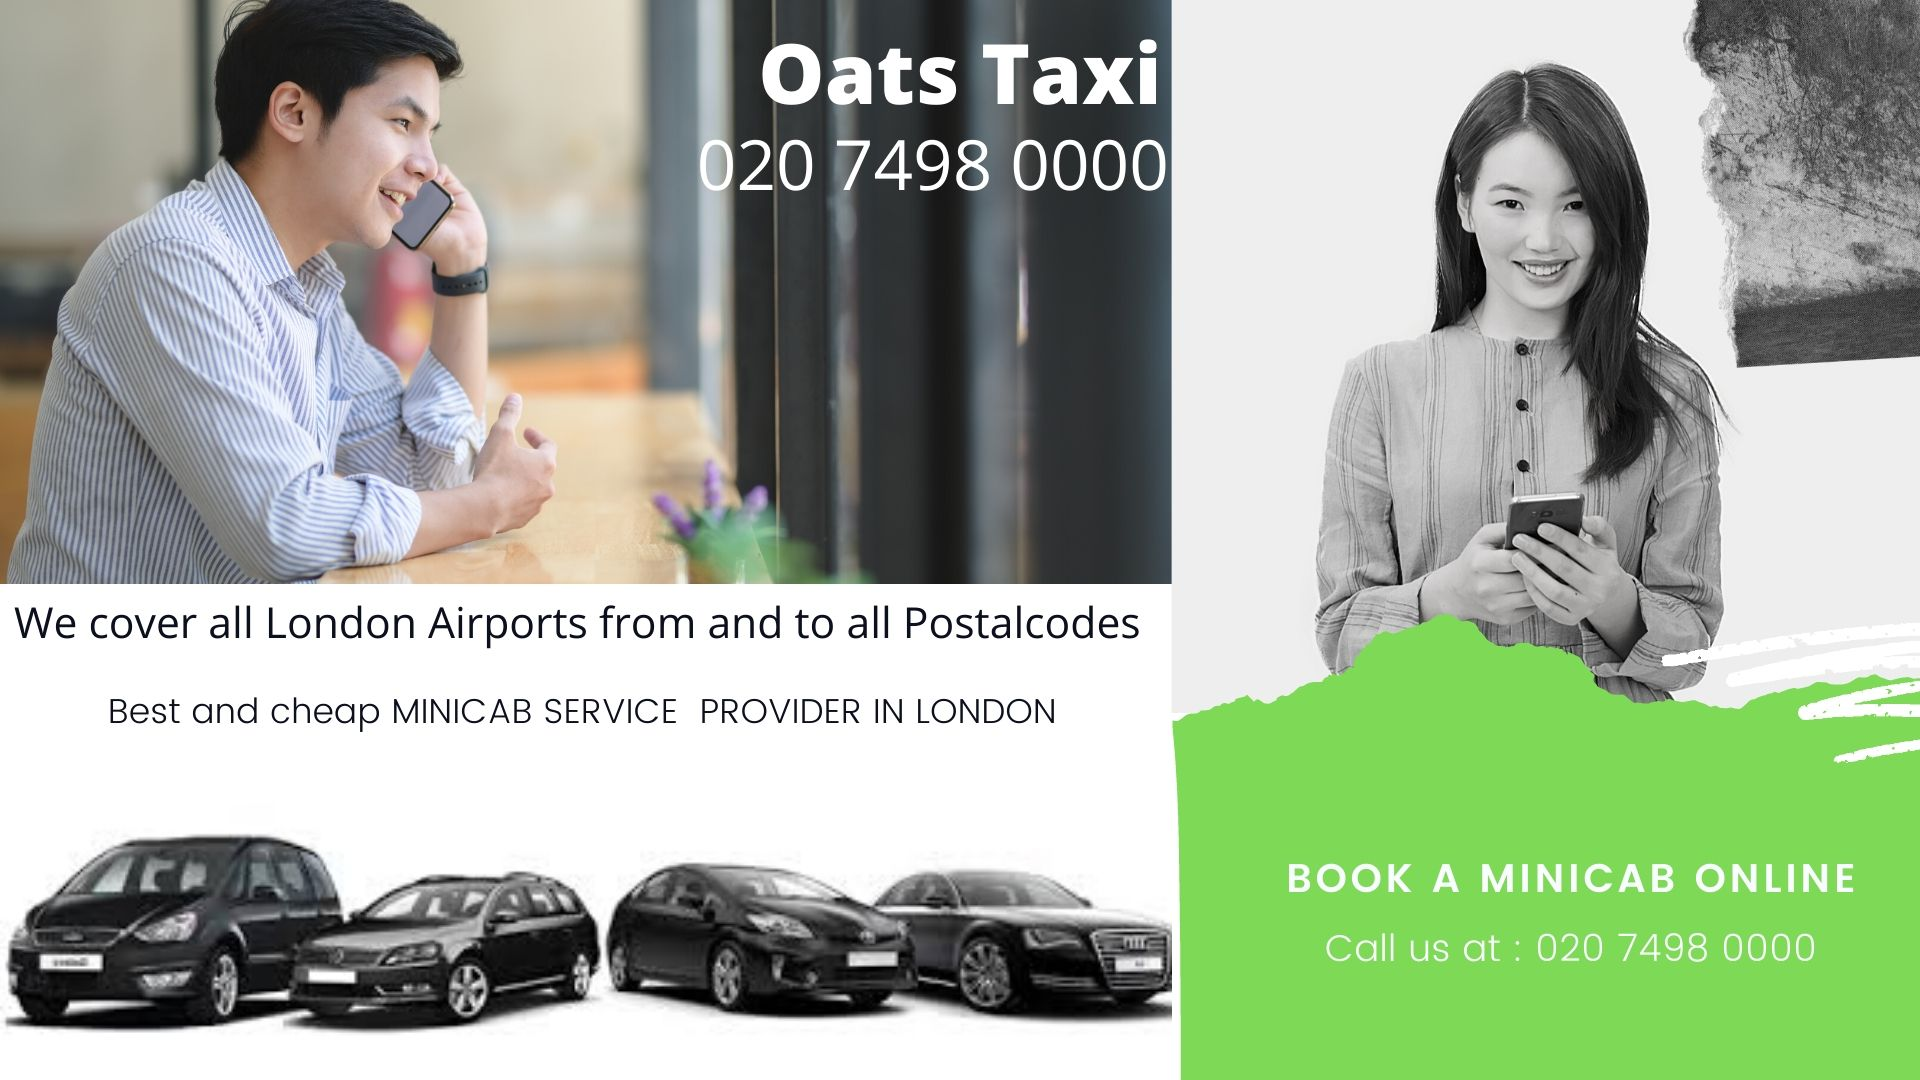 Minicab Office Near SEARLES CLOSE, Battersea SW11, Minicab From Battersea SW11 To Gatwick Airport